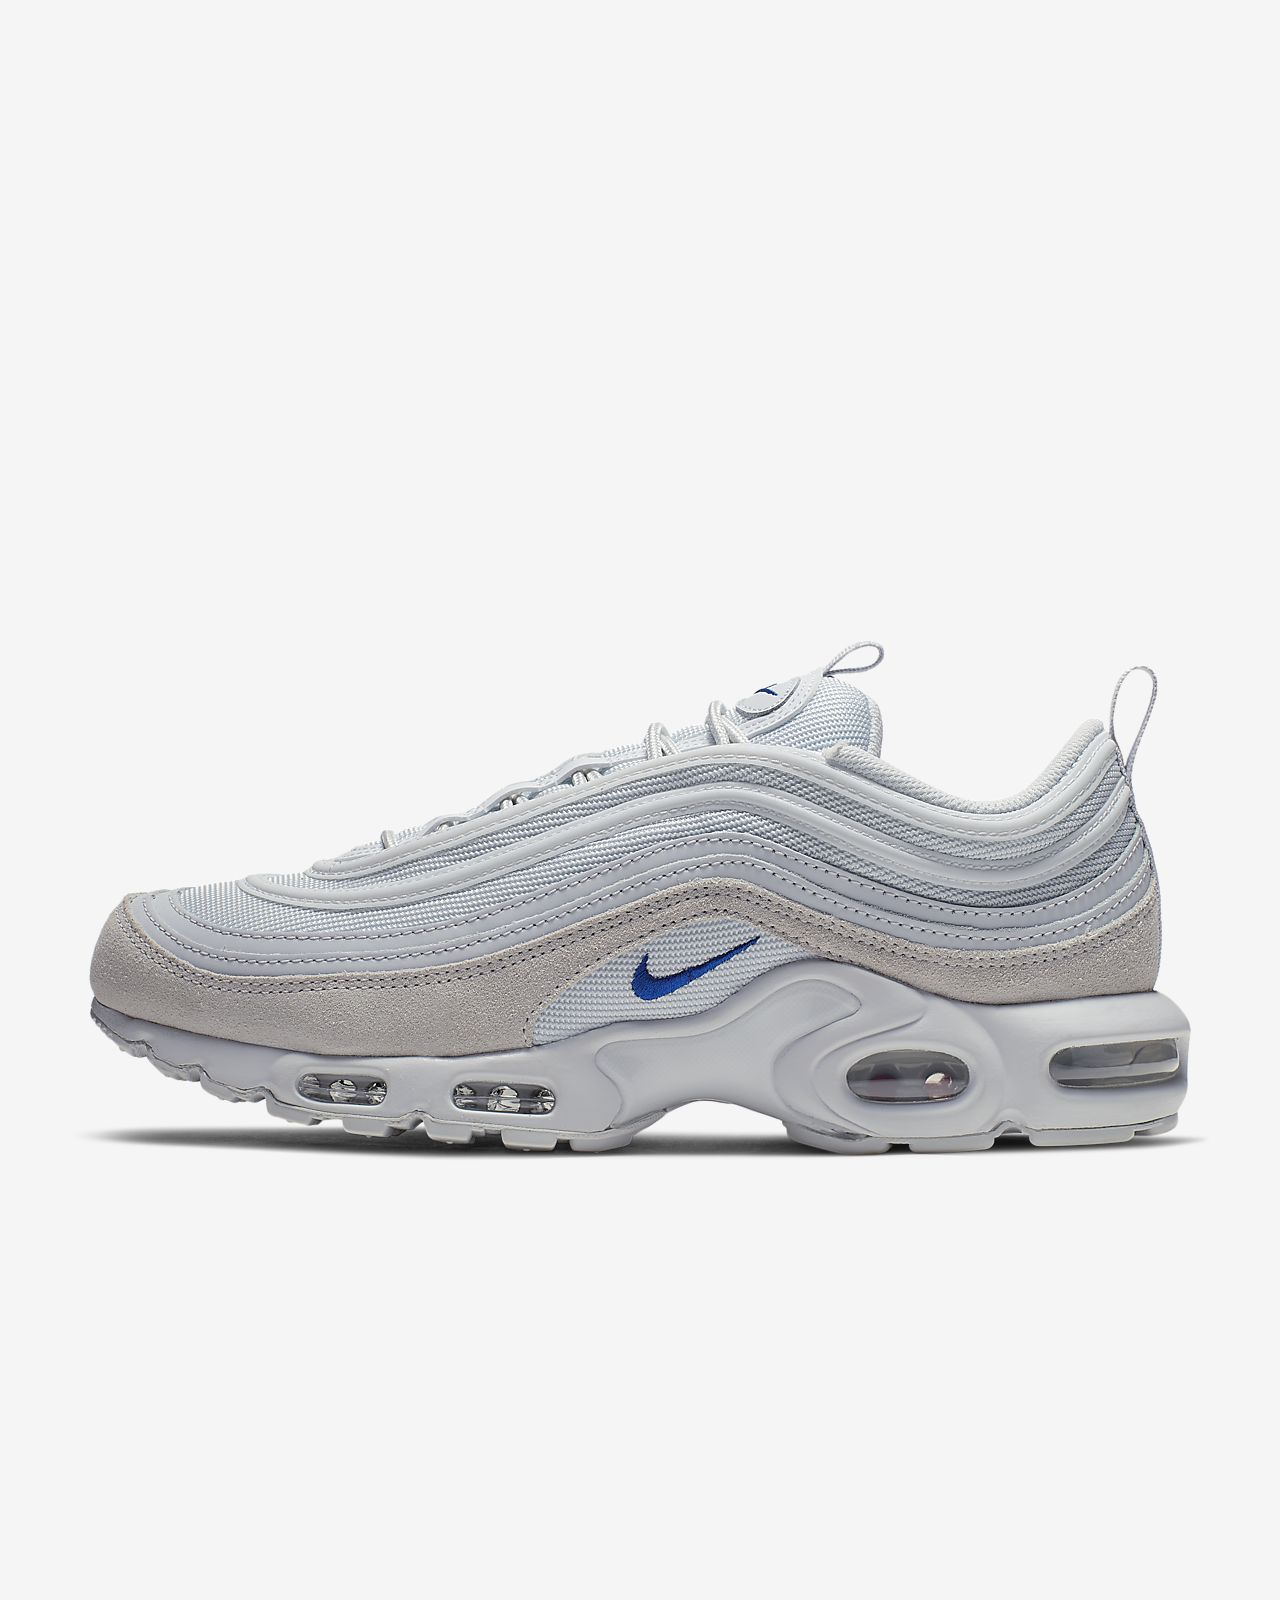 half off 8afb9 3a29f ... Chaussure Nike Air Max Plus 97 pour Homme